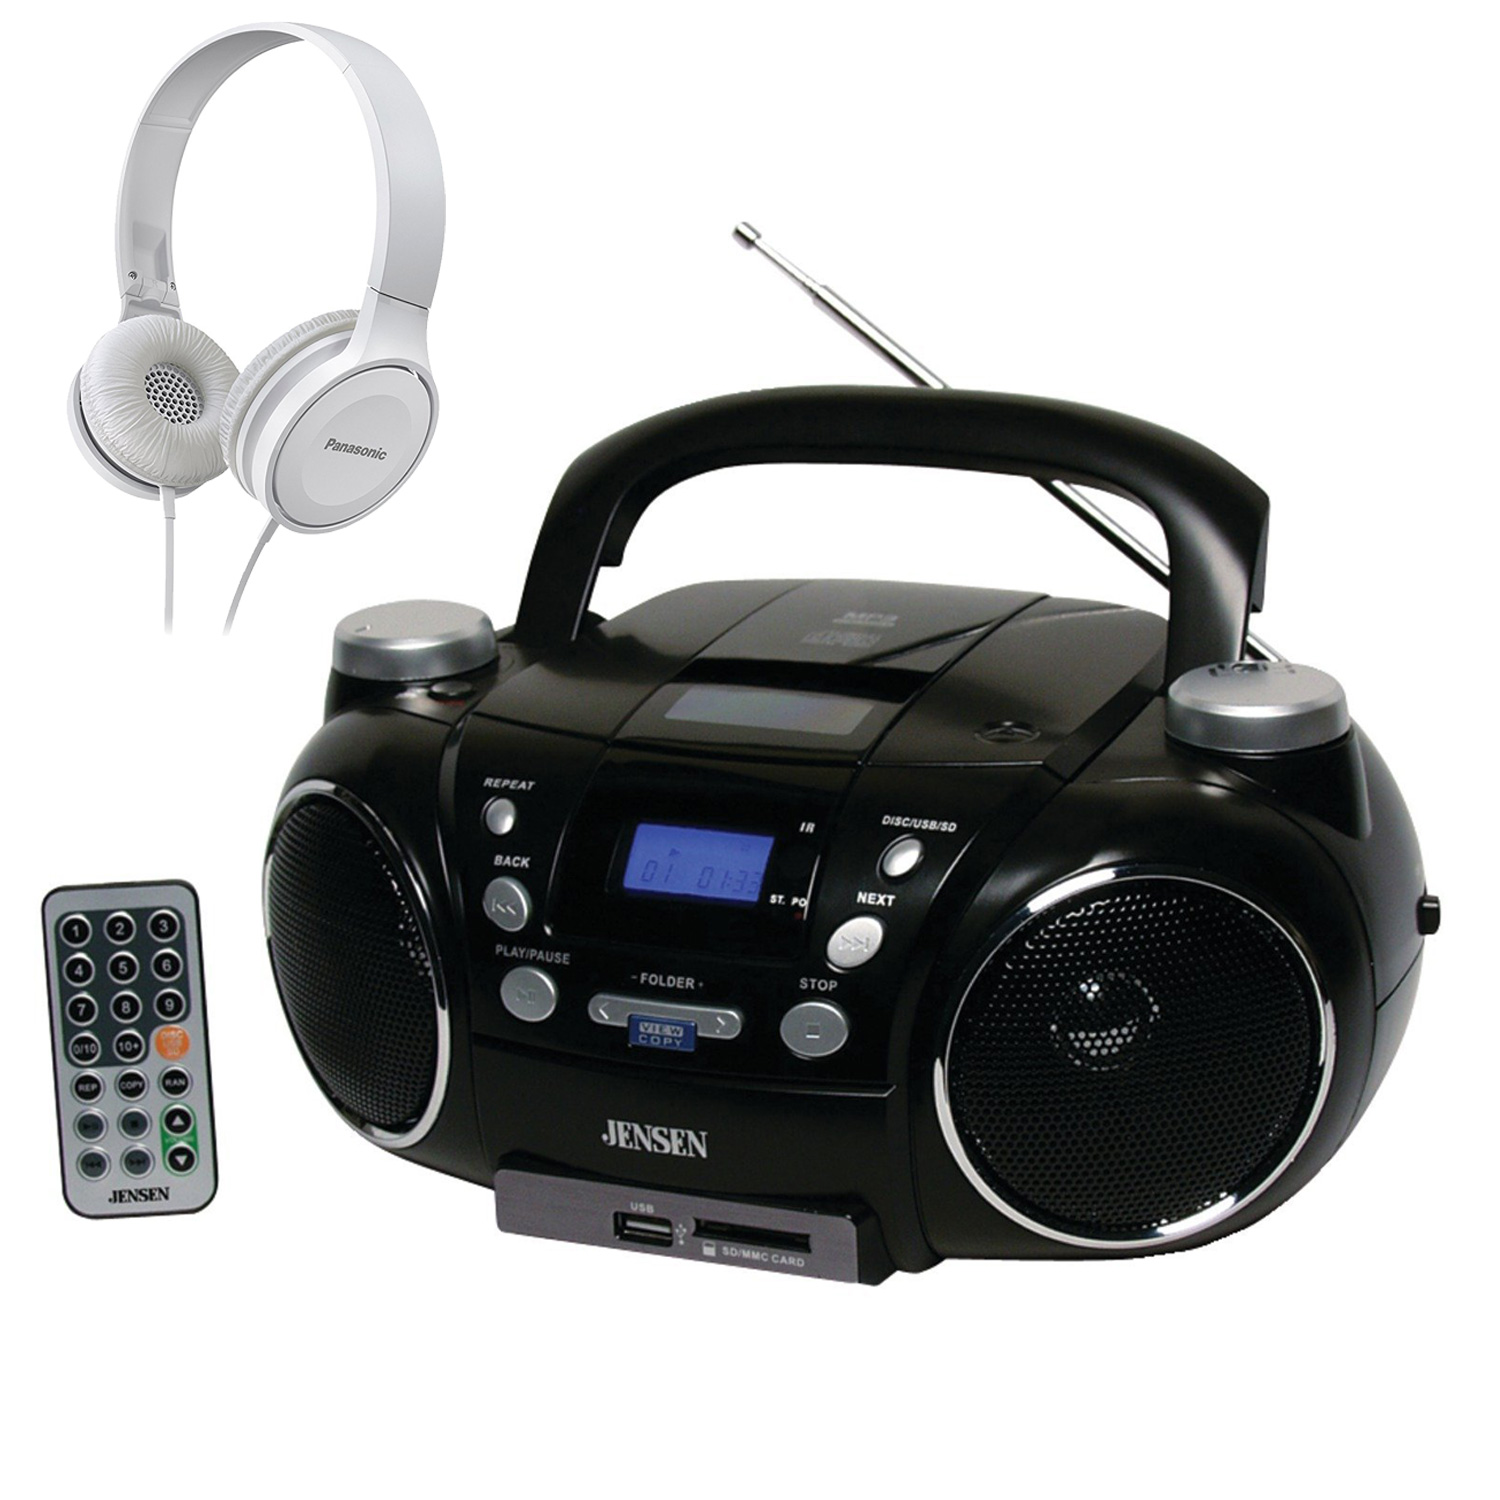 Jensen CD750 Portable AM/FM Stereo CD, MP3, Player w/ White On-Ear